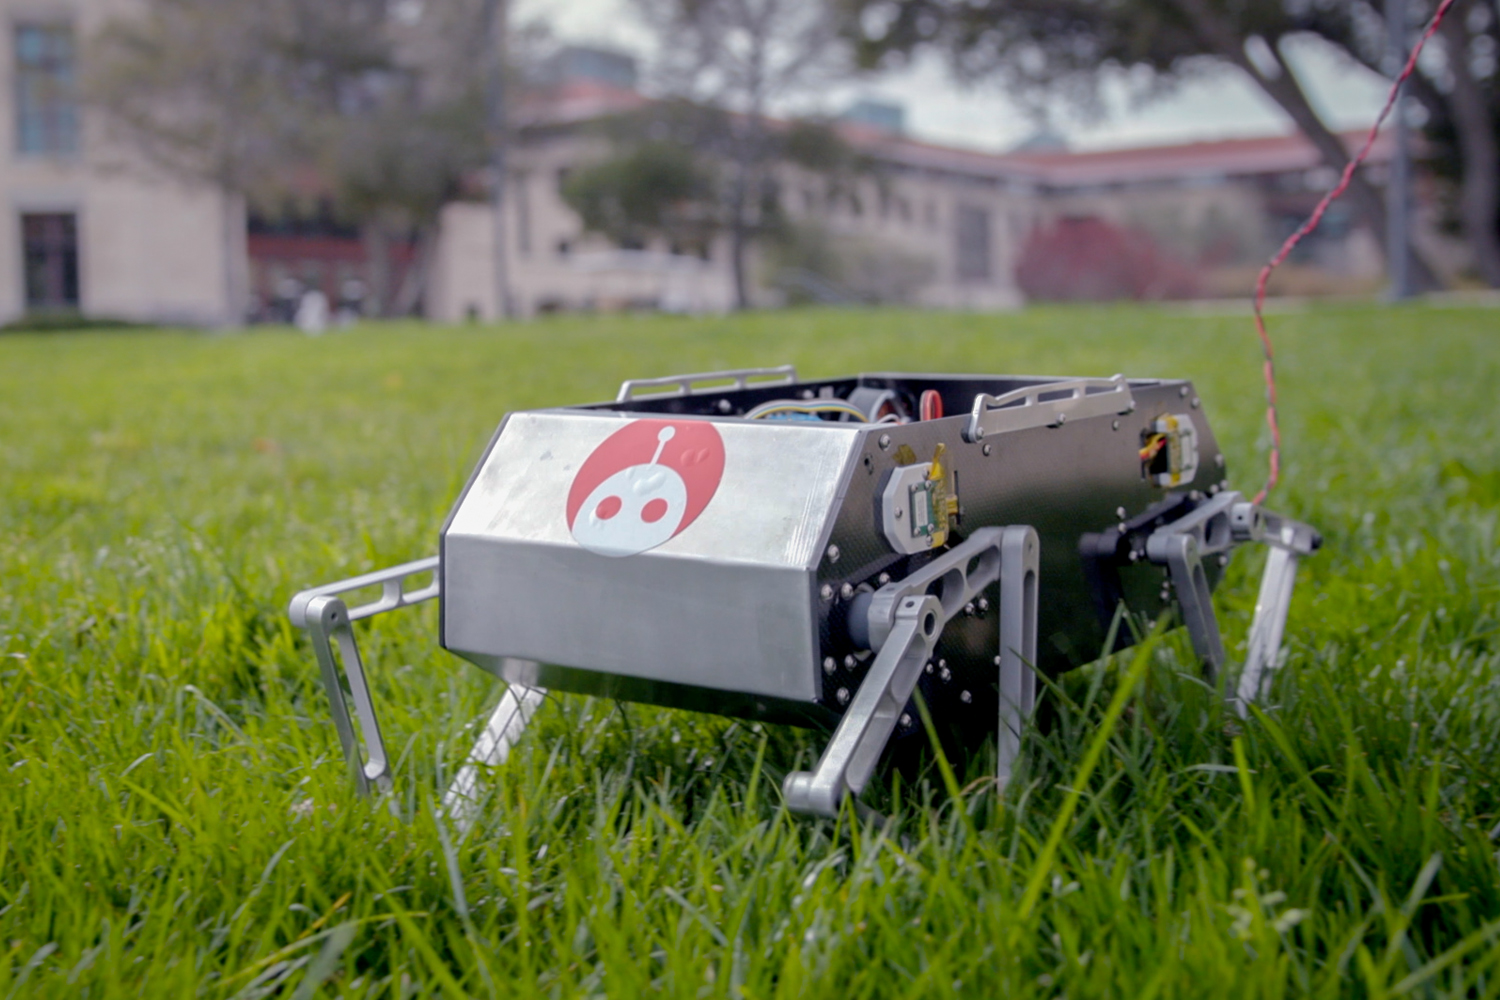 Stanford Doggo Is An Open-Sourced Robot Dog From Stanford University